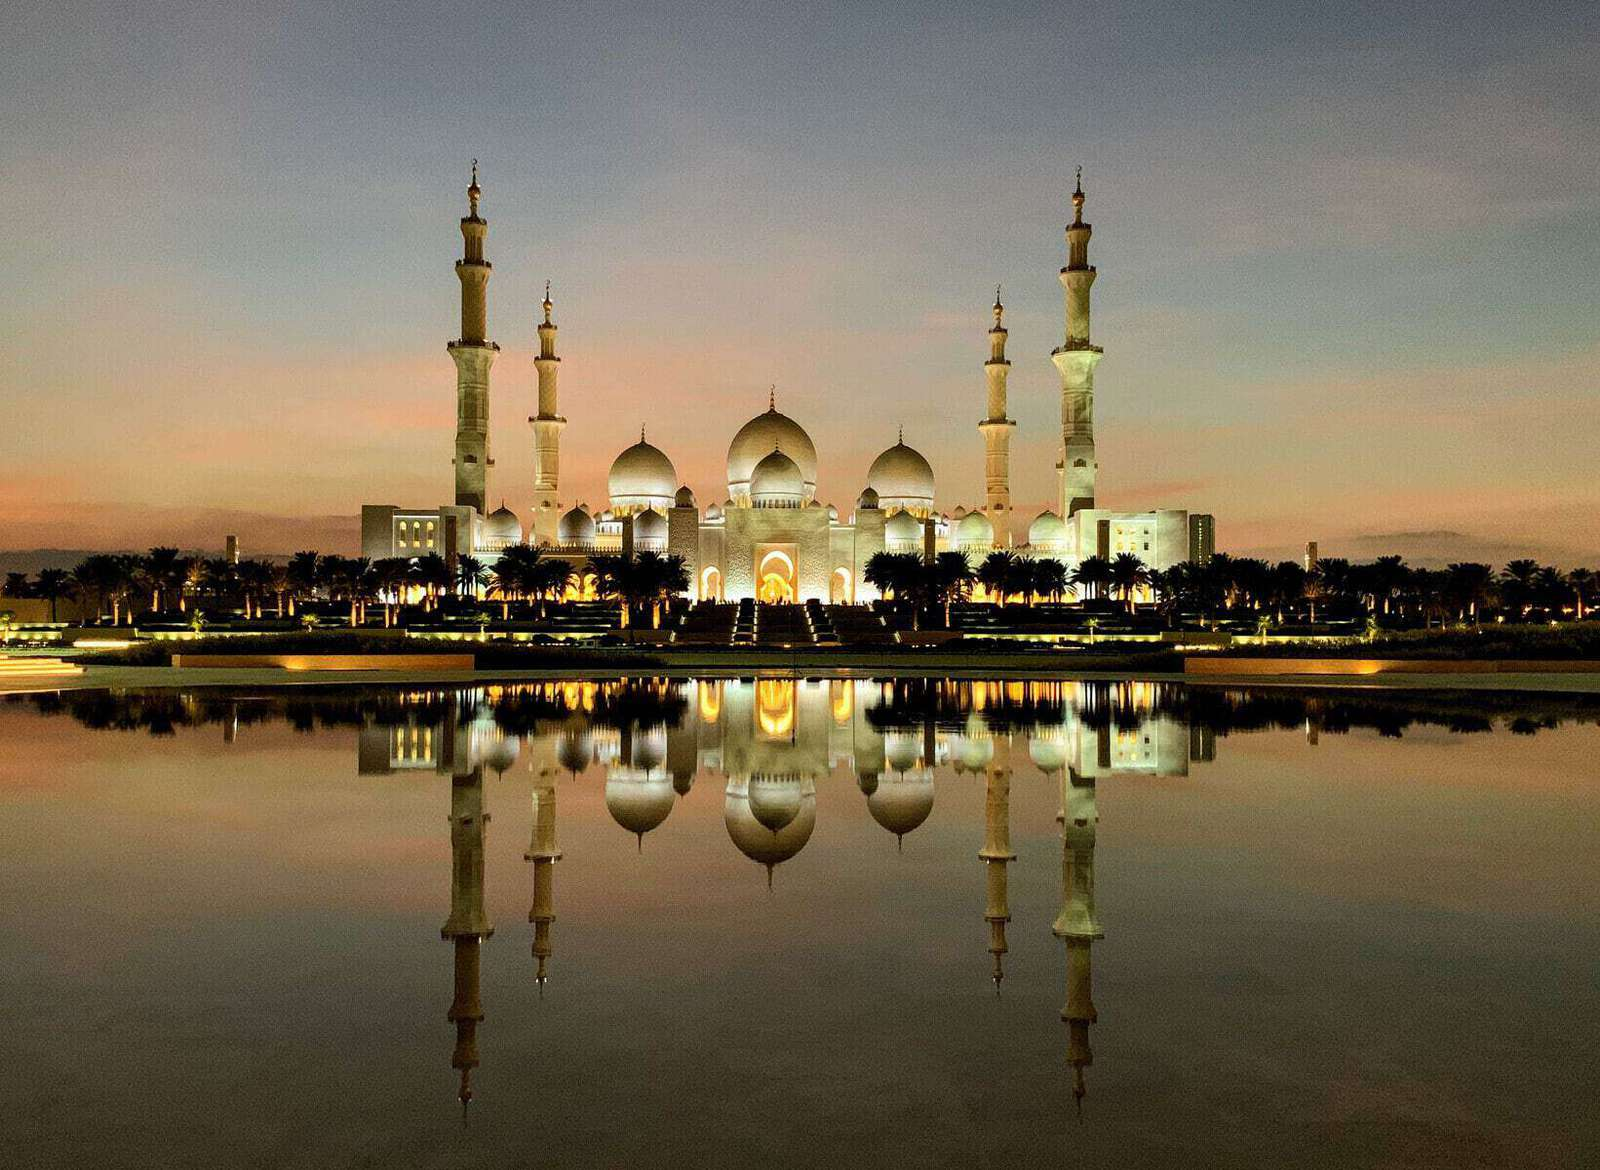 sunset on the mosque2